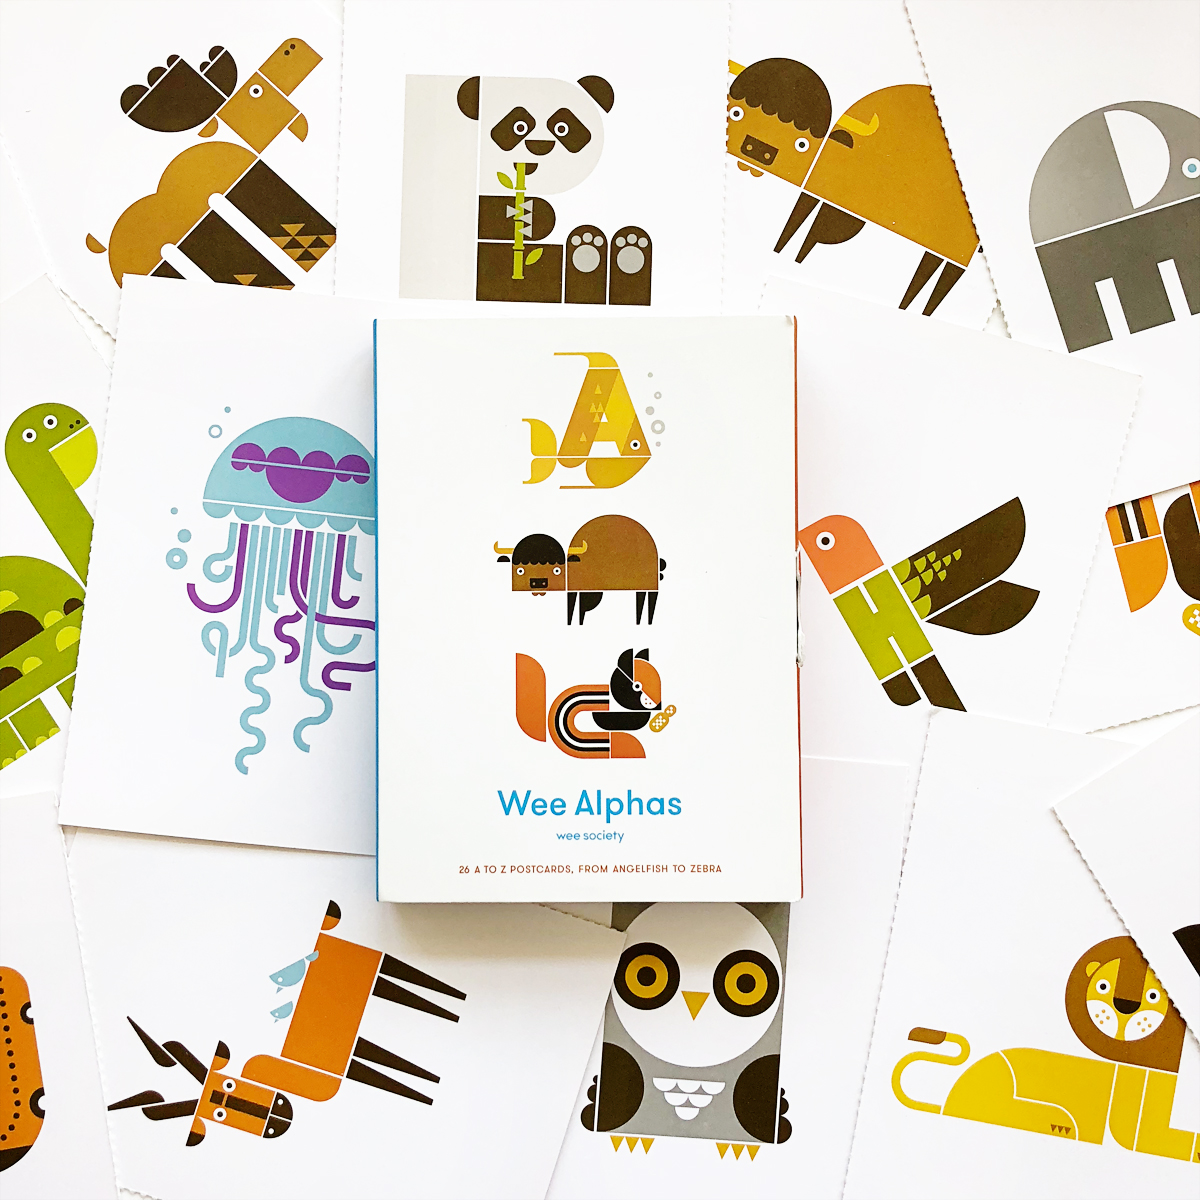 Wee Alphas: 26 A to Z Postcards, from Angelfish to Zebra | Avery and Augustine